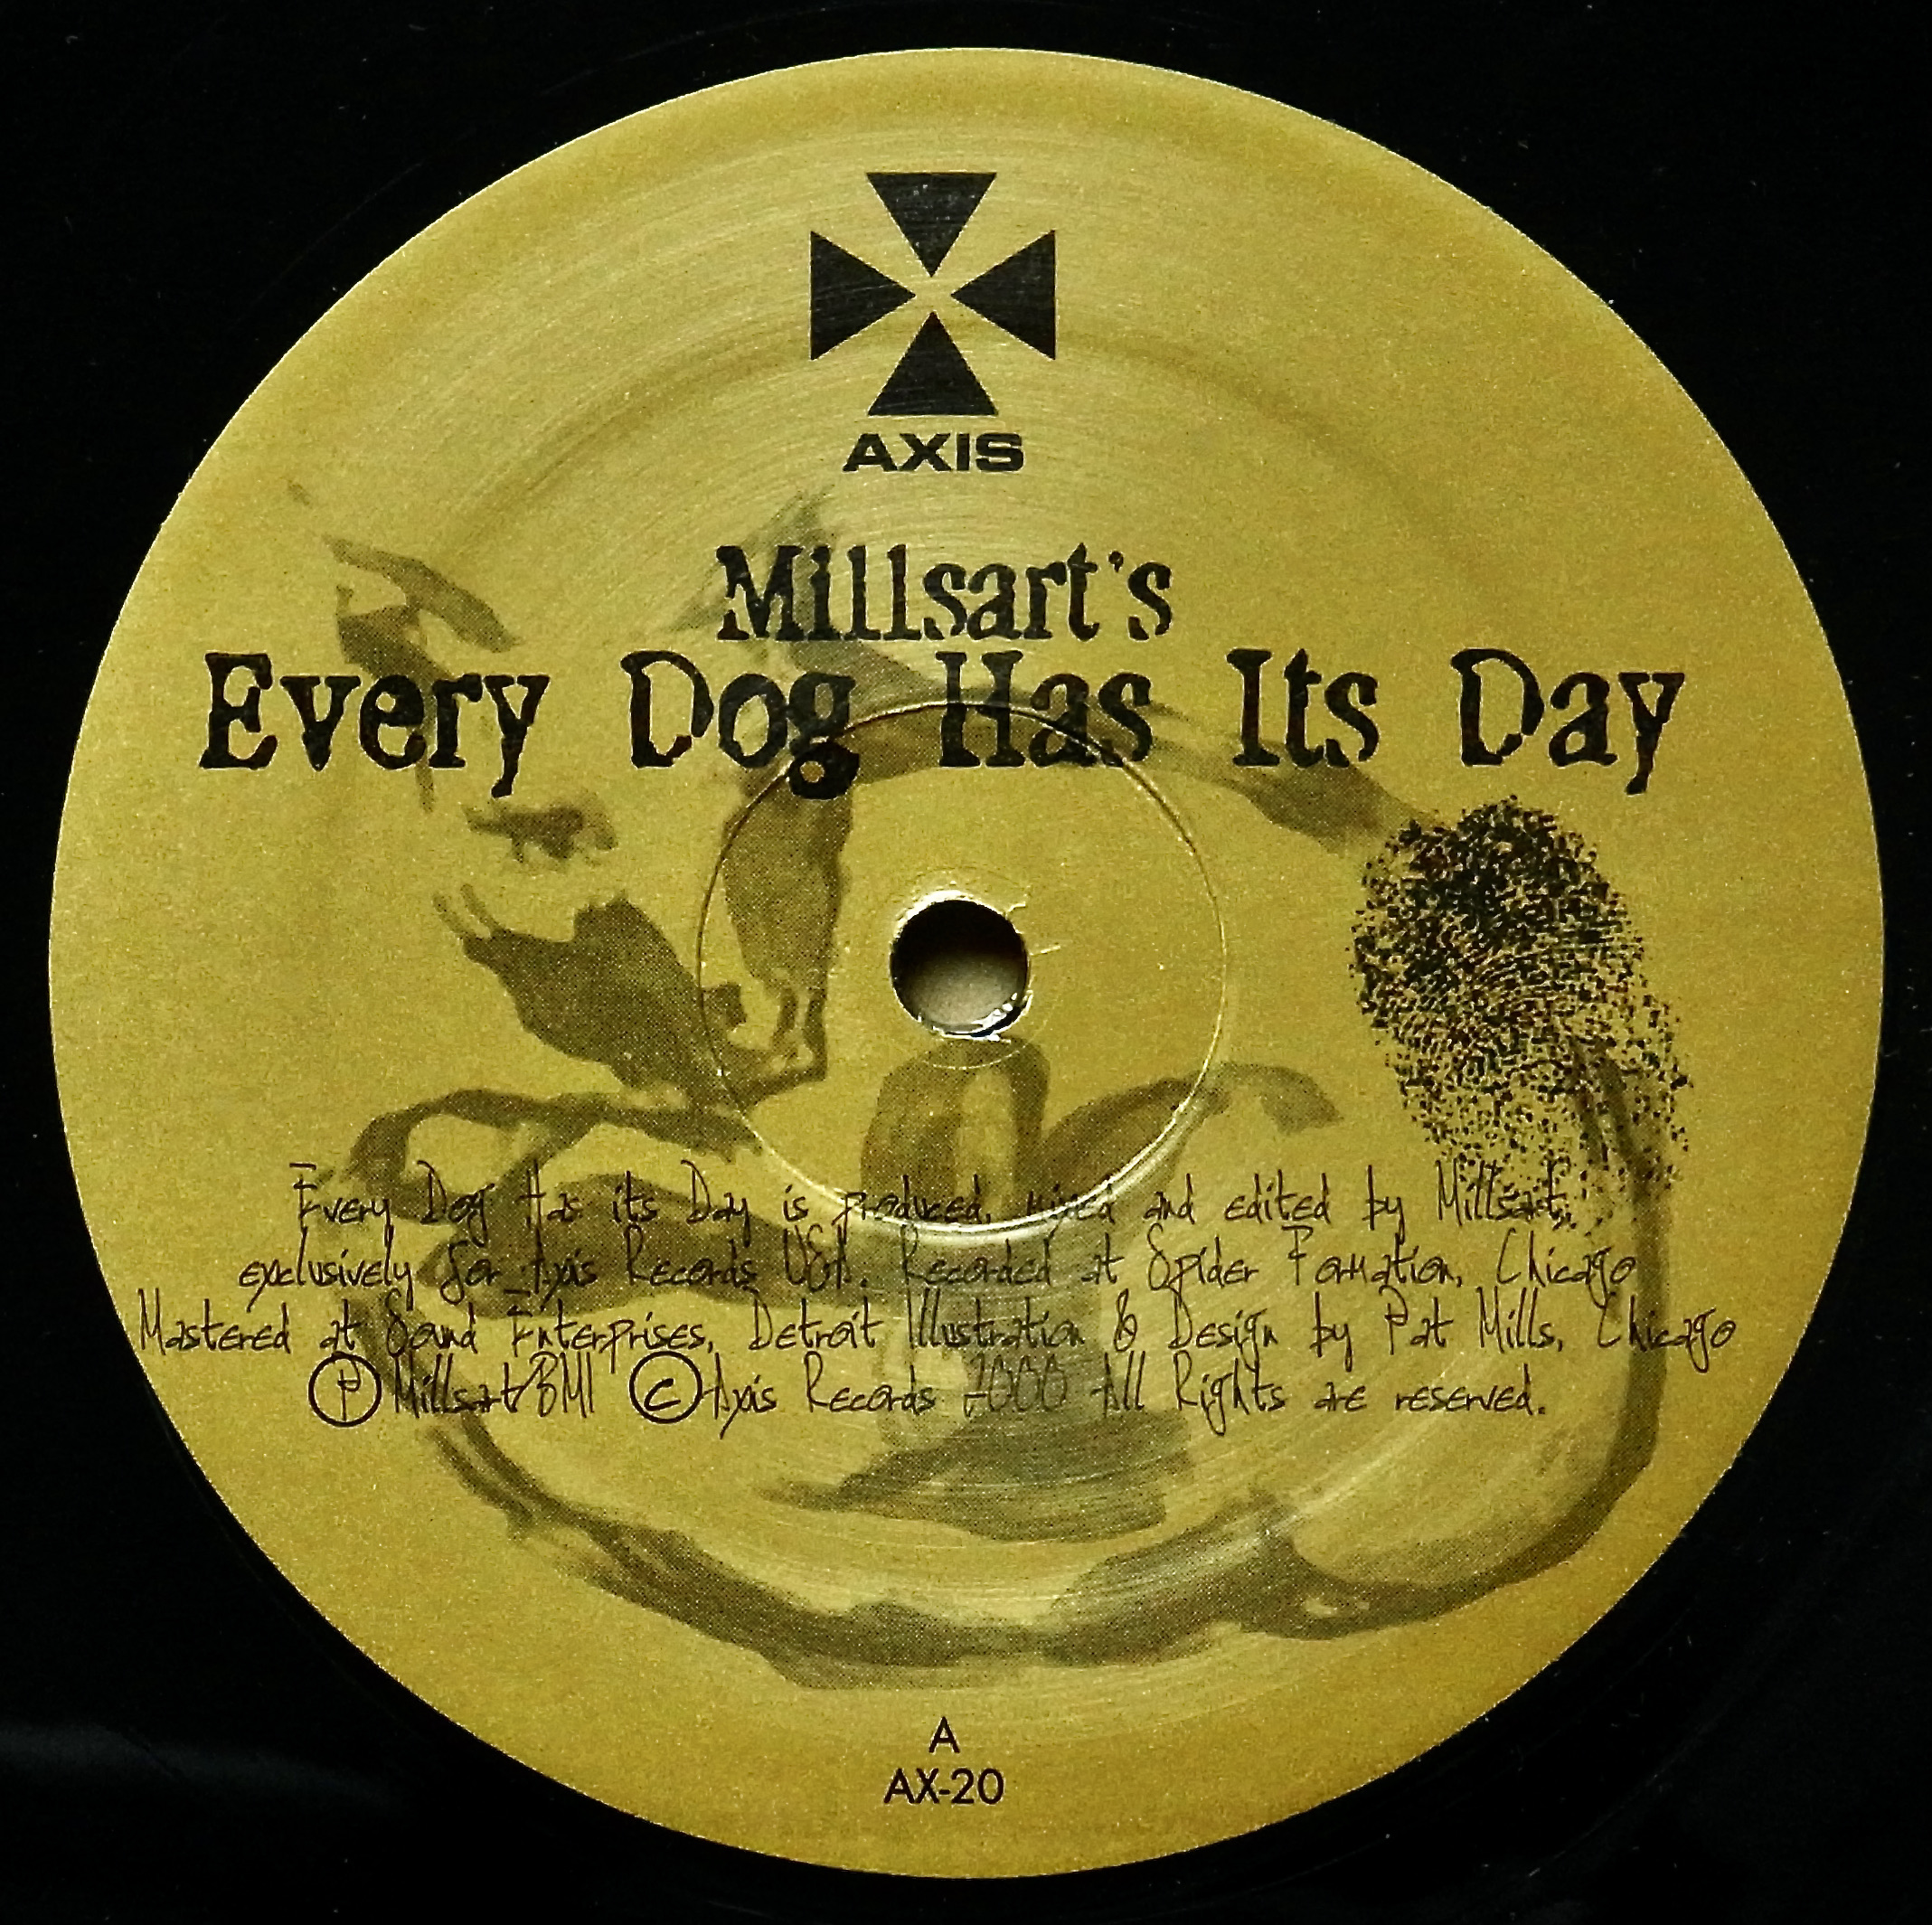 MILLSART / Every Dog Has Its Day